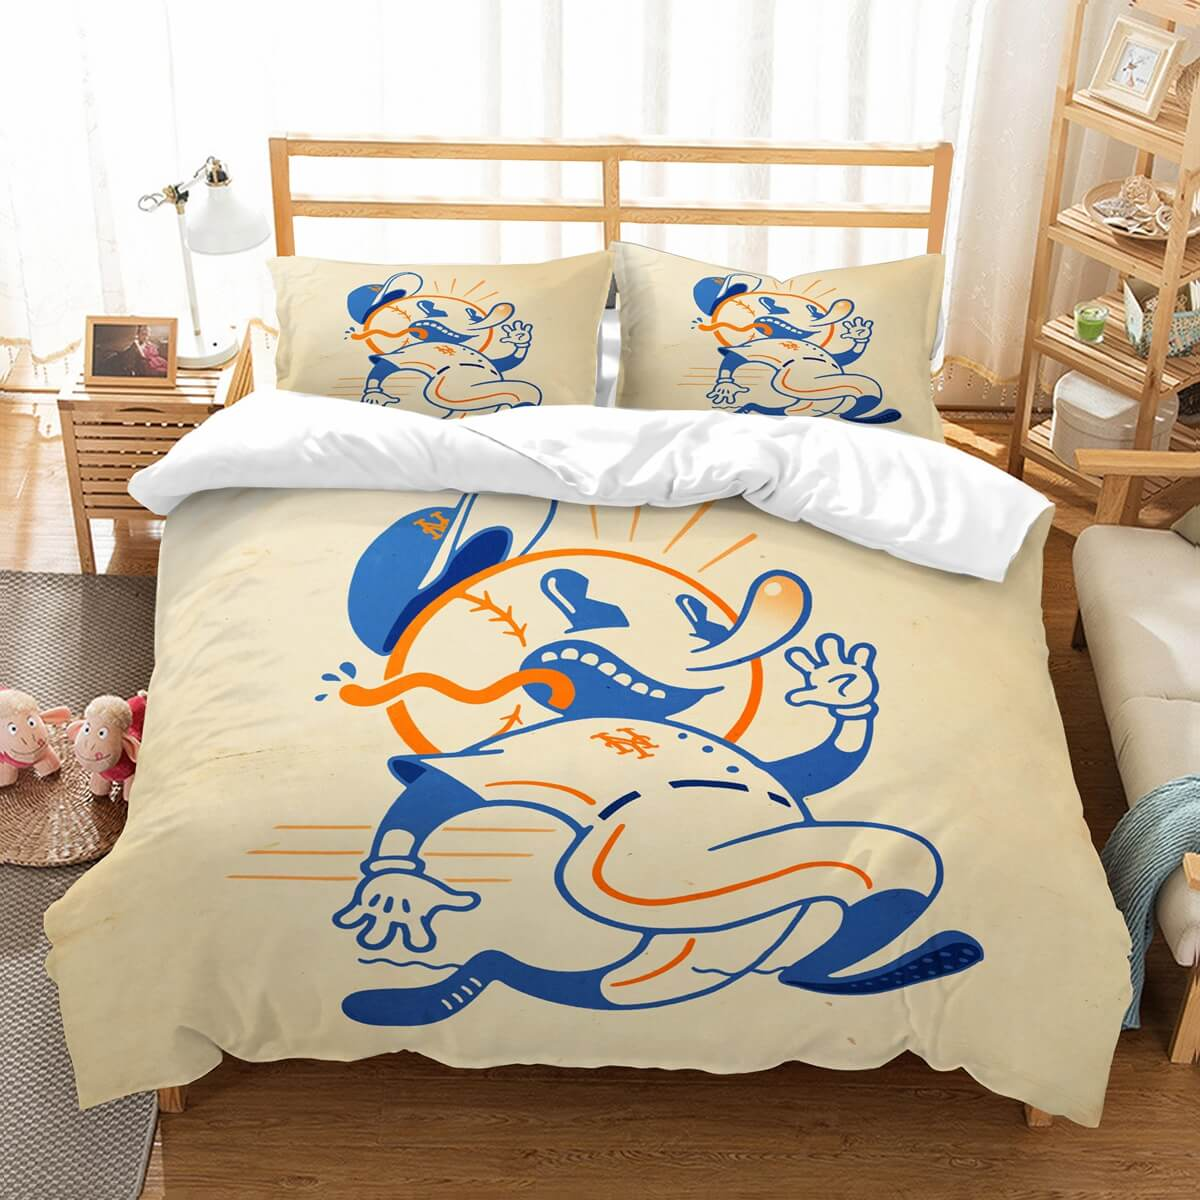 3D Customize New York Mets Bedding Set Duvet Cover Set Bedroom Set Bedlinen